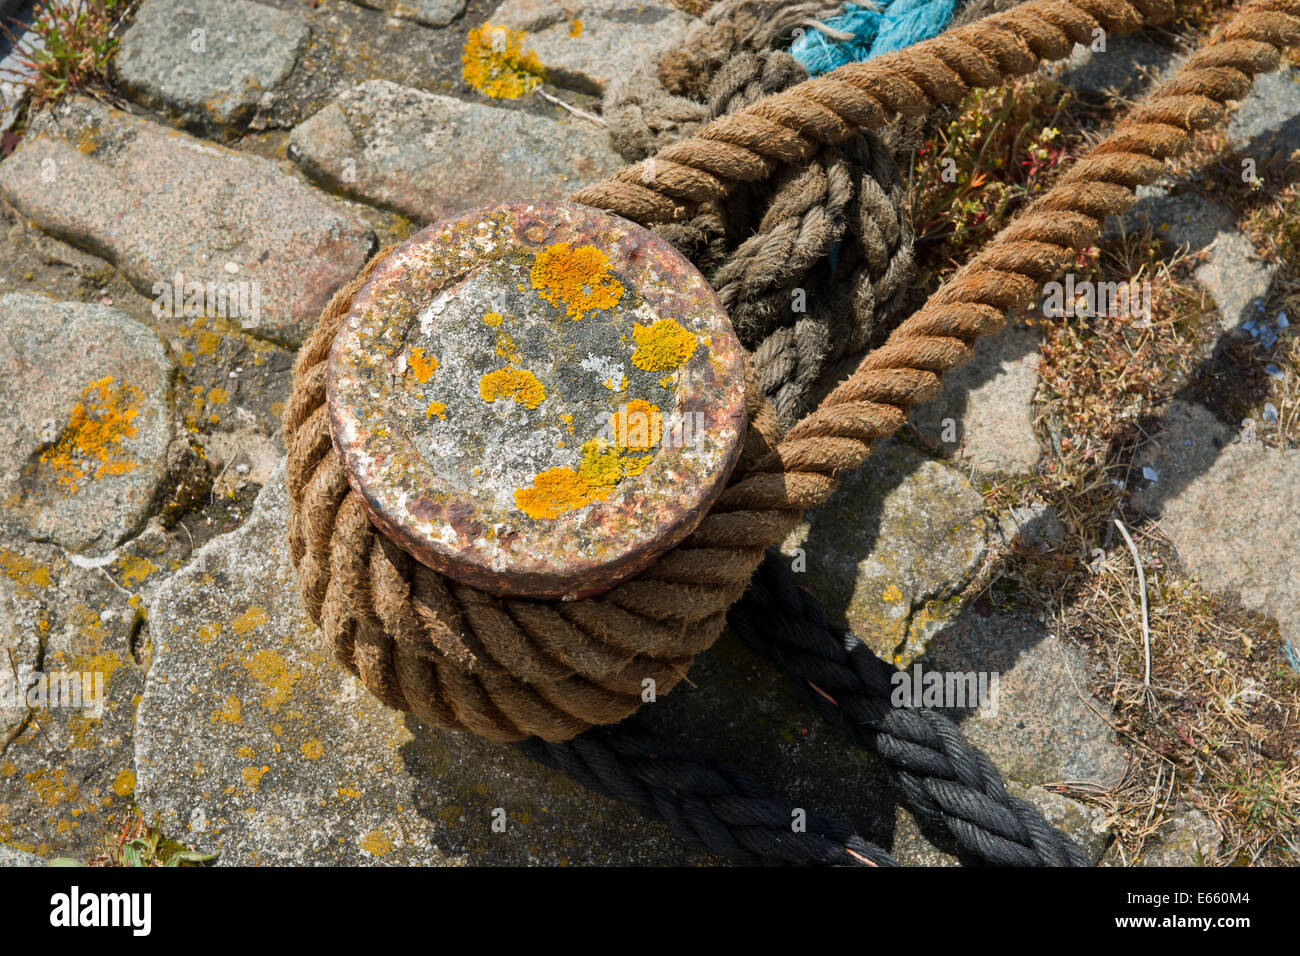 A rusty mooring post with hemp rope from a ship looped around it - Stock Image